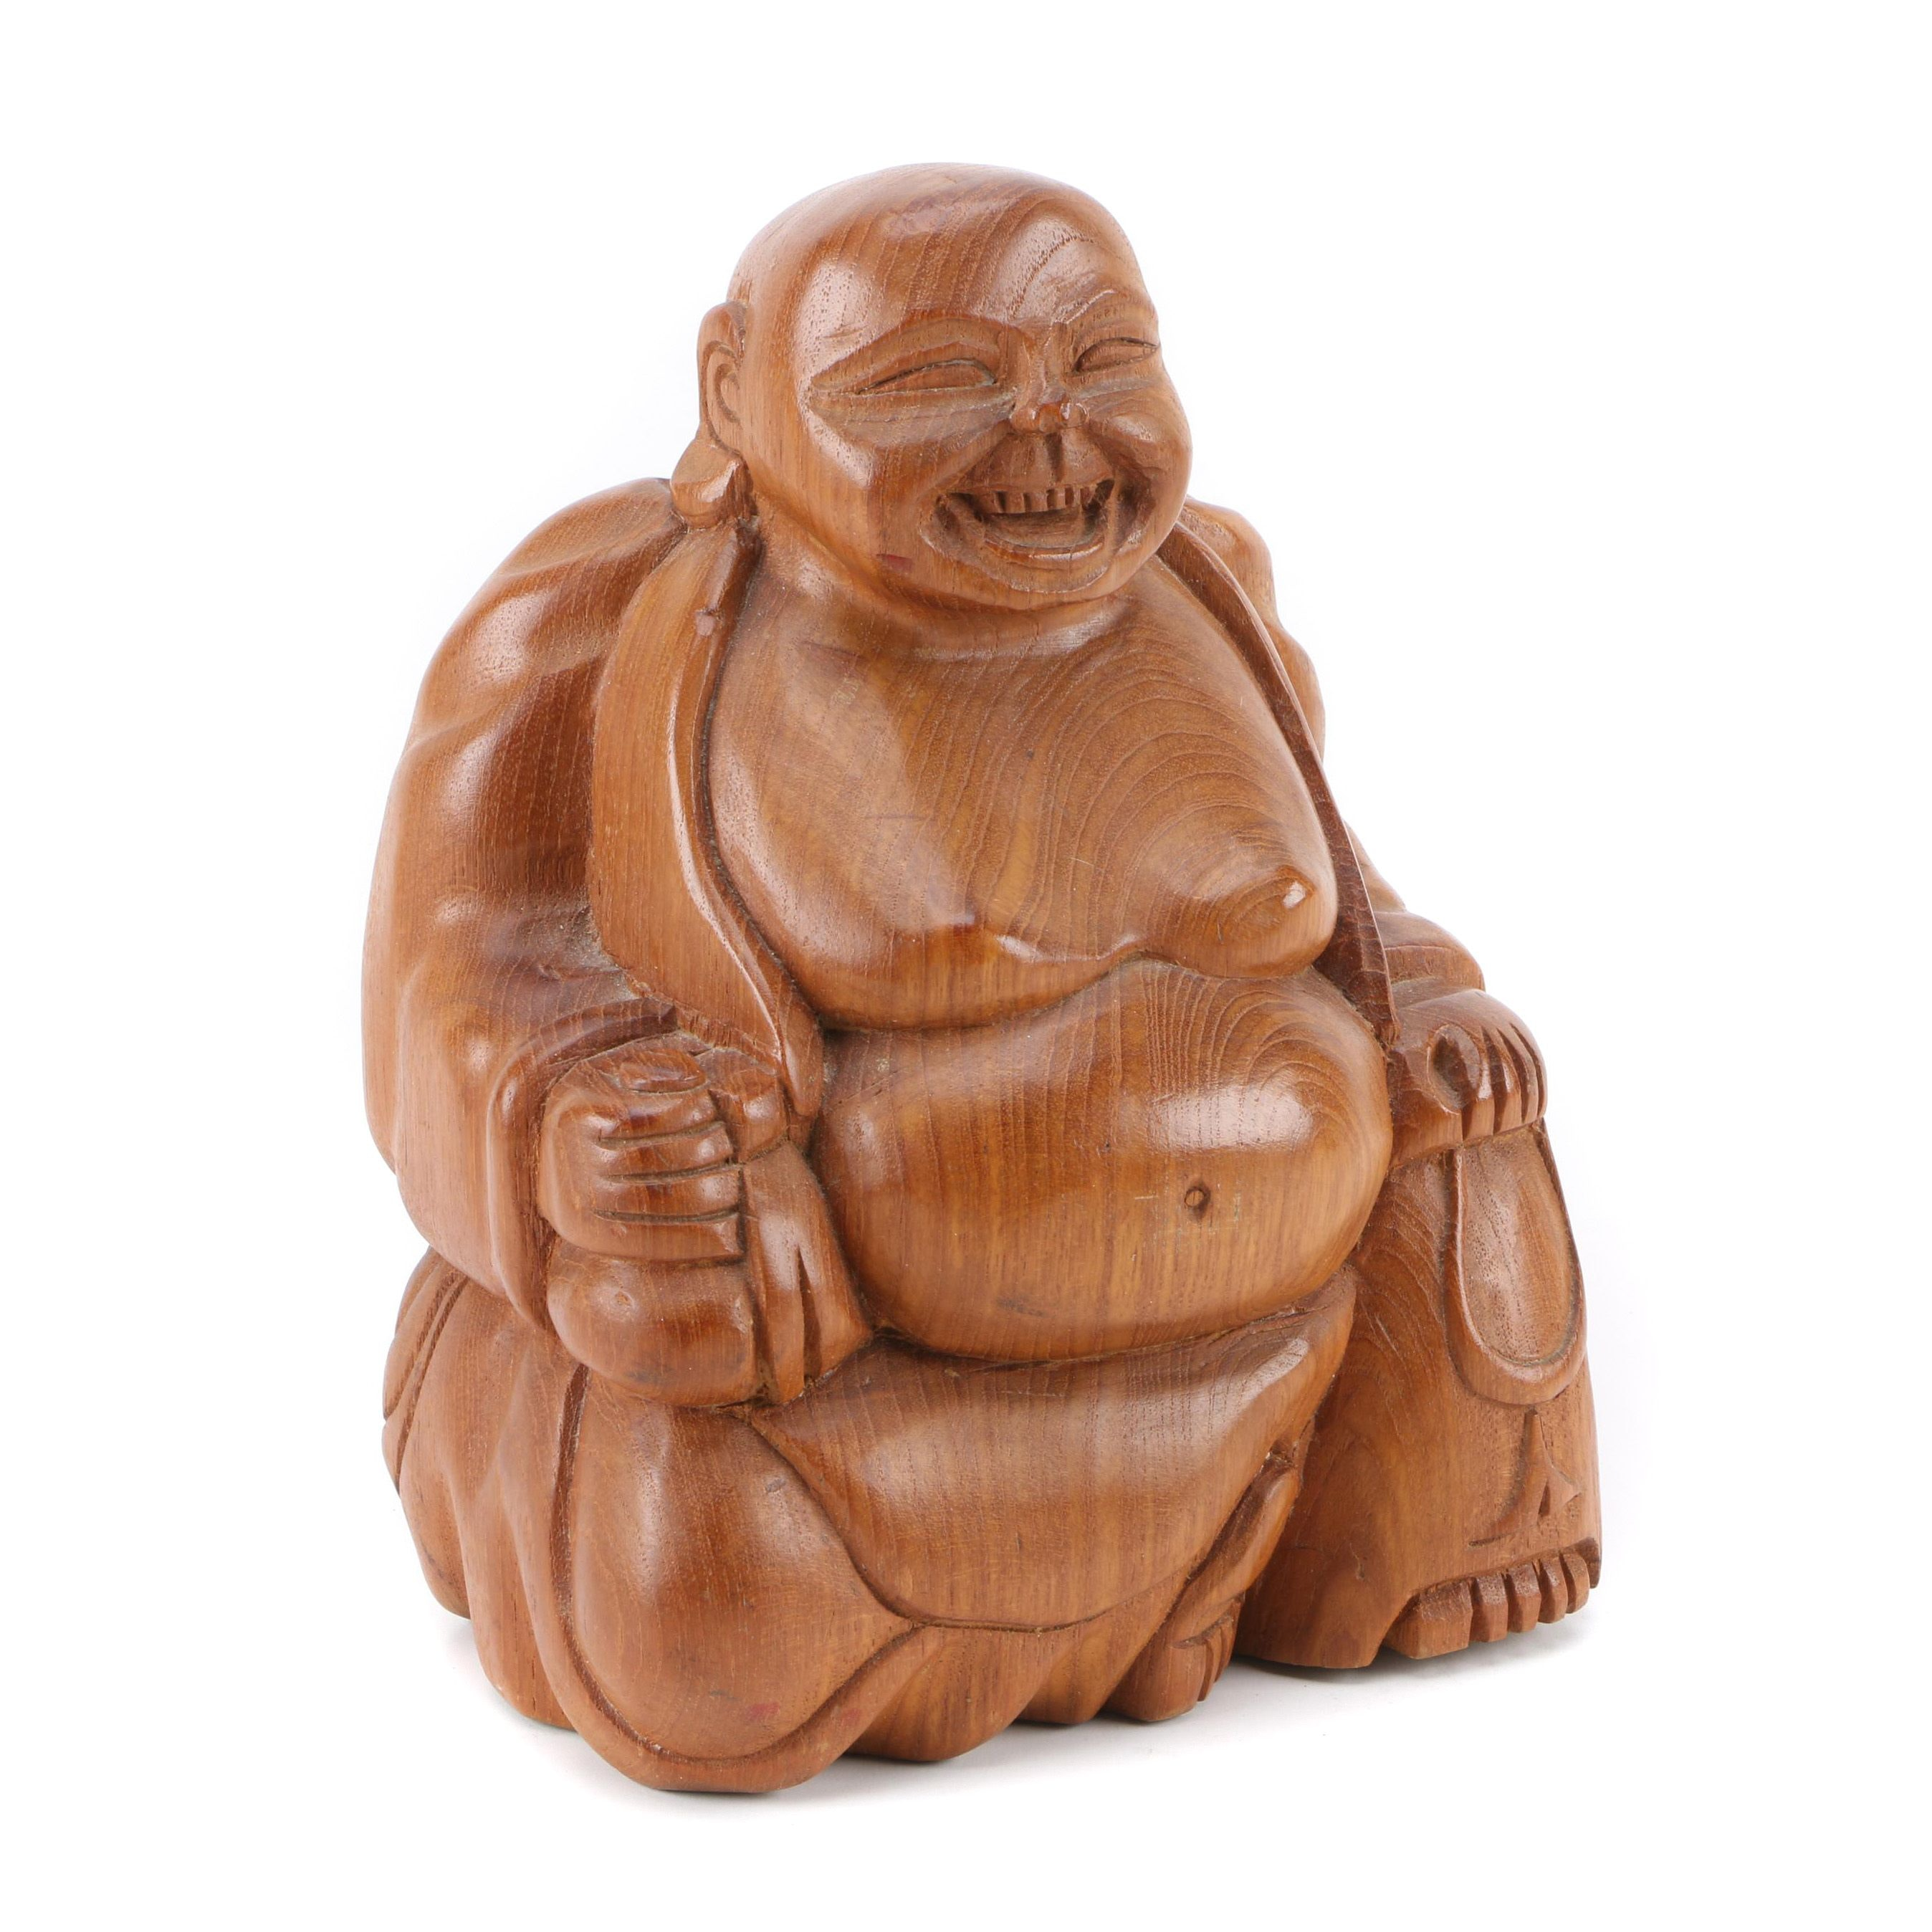 Carved Wood Budai Figurine